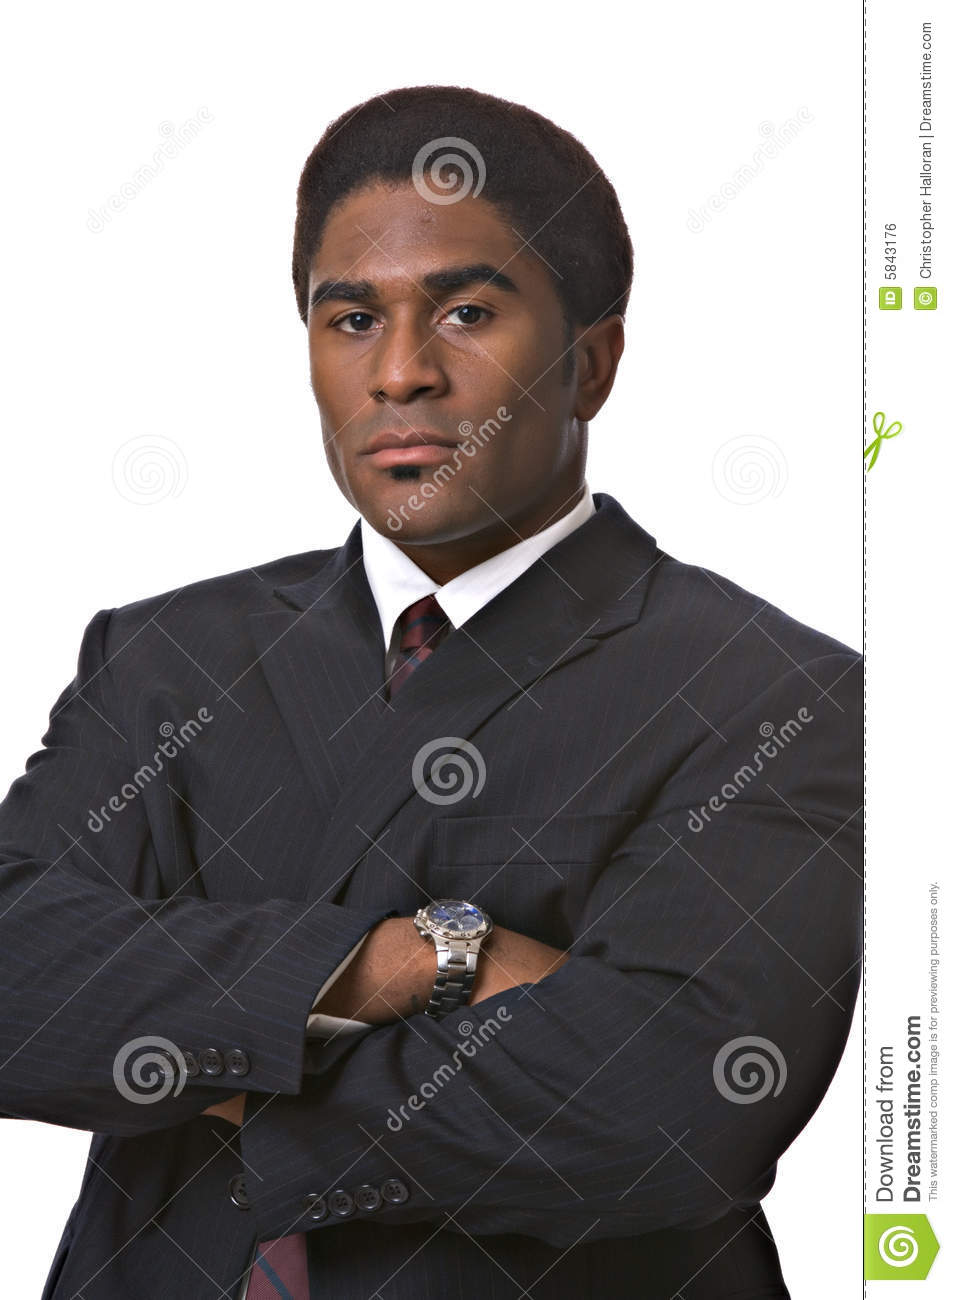 African-American businessman